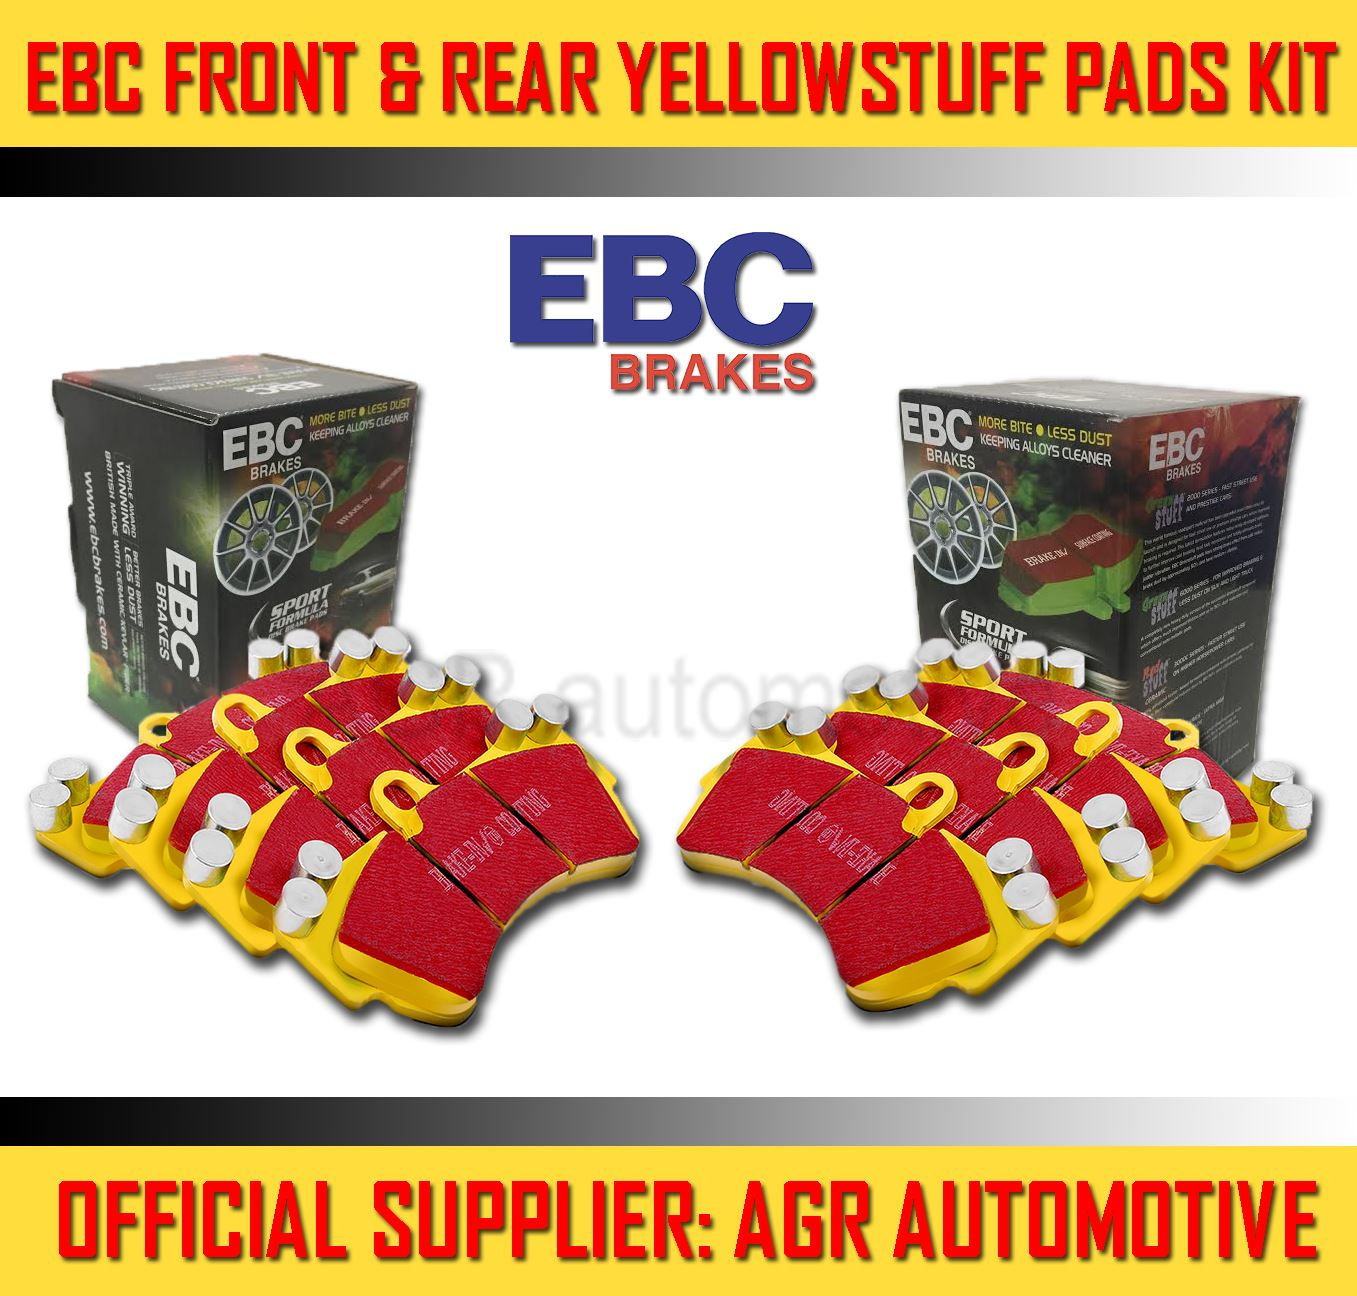 REAR PADS KIT FOR HONDA CIVIC 2.2 TD TYPE-S FN 2006-12 EBC FRONT